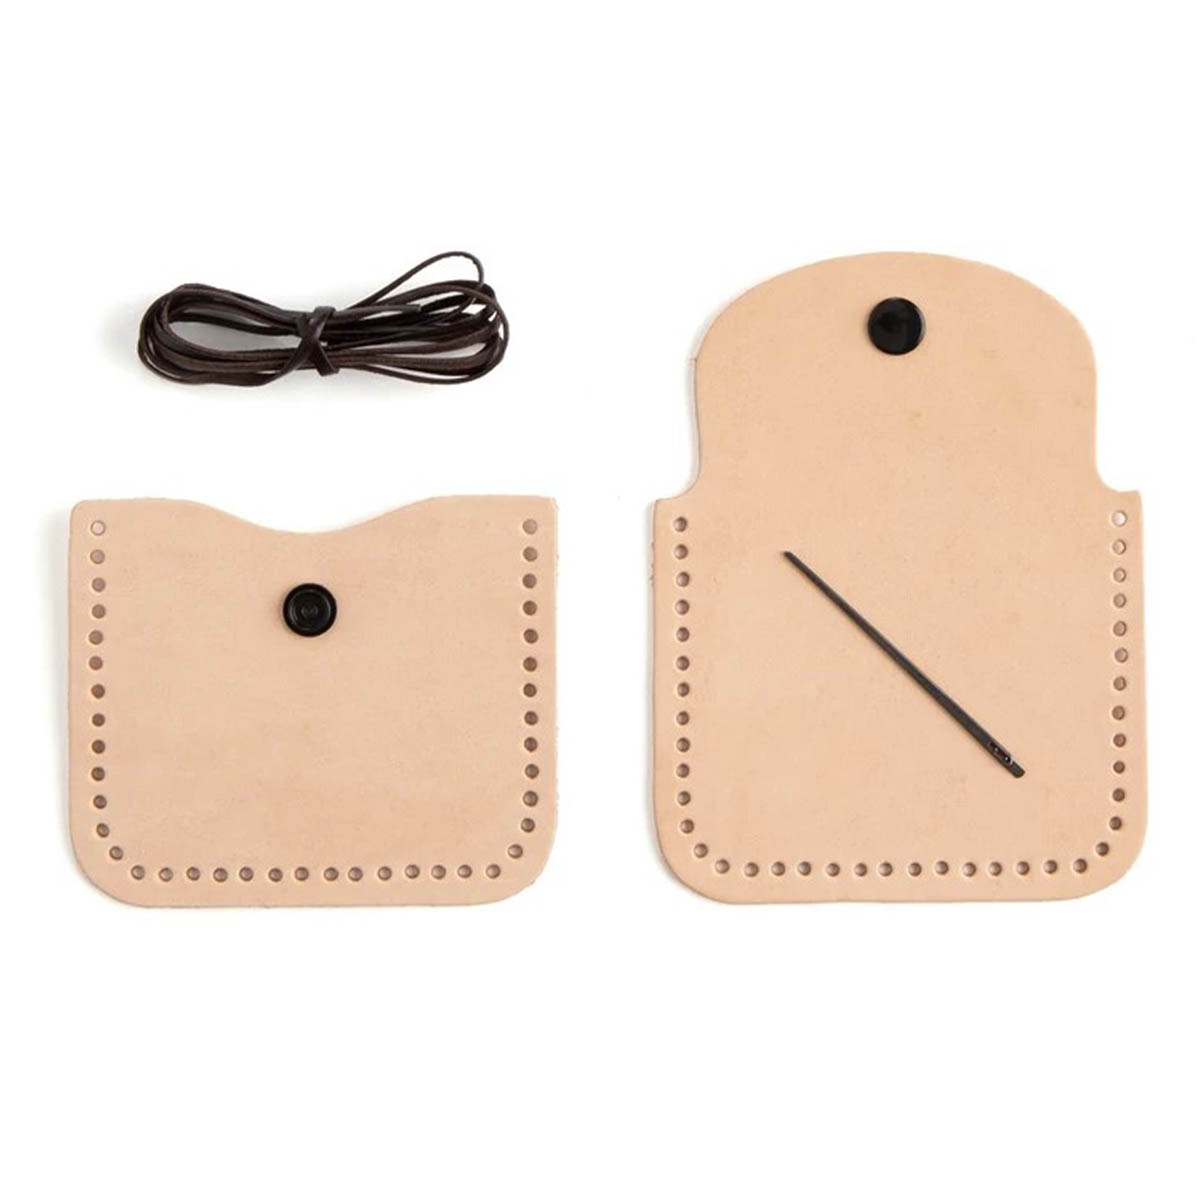 Kit pour porte-monnaie rectangle - 4107-00